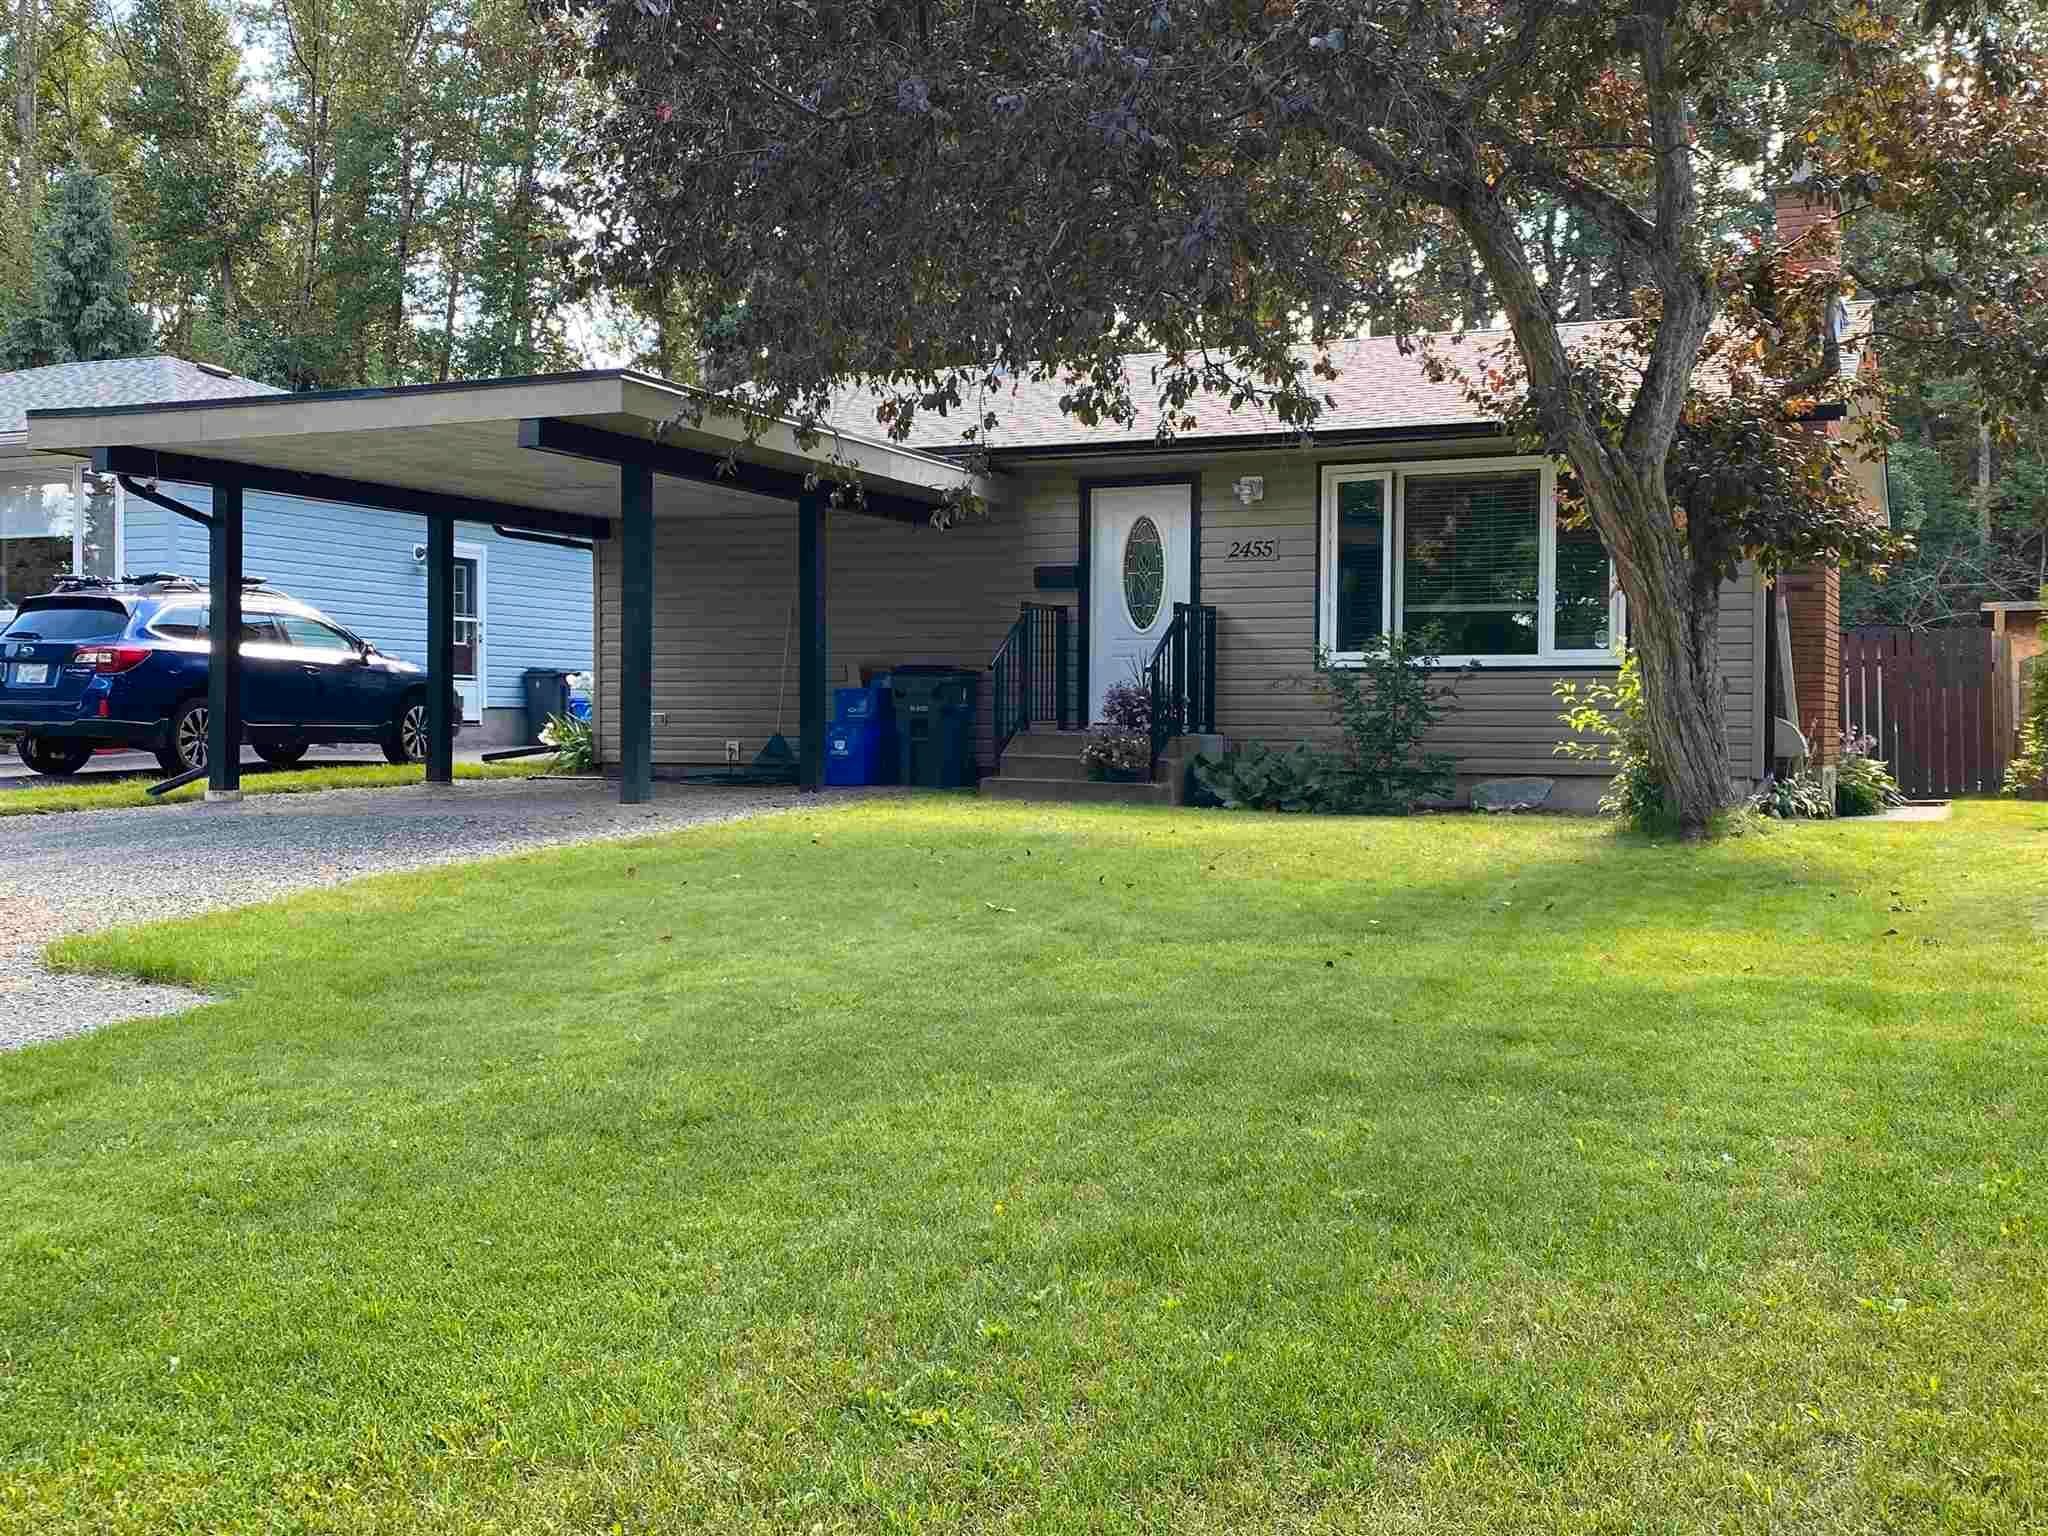 """Main Photo: 2455 LISGAR Crescent in Prince George: Westwood House for sale in """"Westwood"""" (PG City West (Zone 71))  : MLS®# R2605938"""